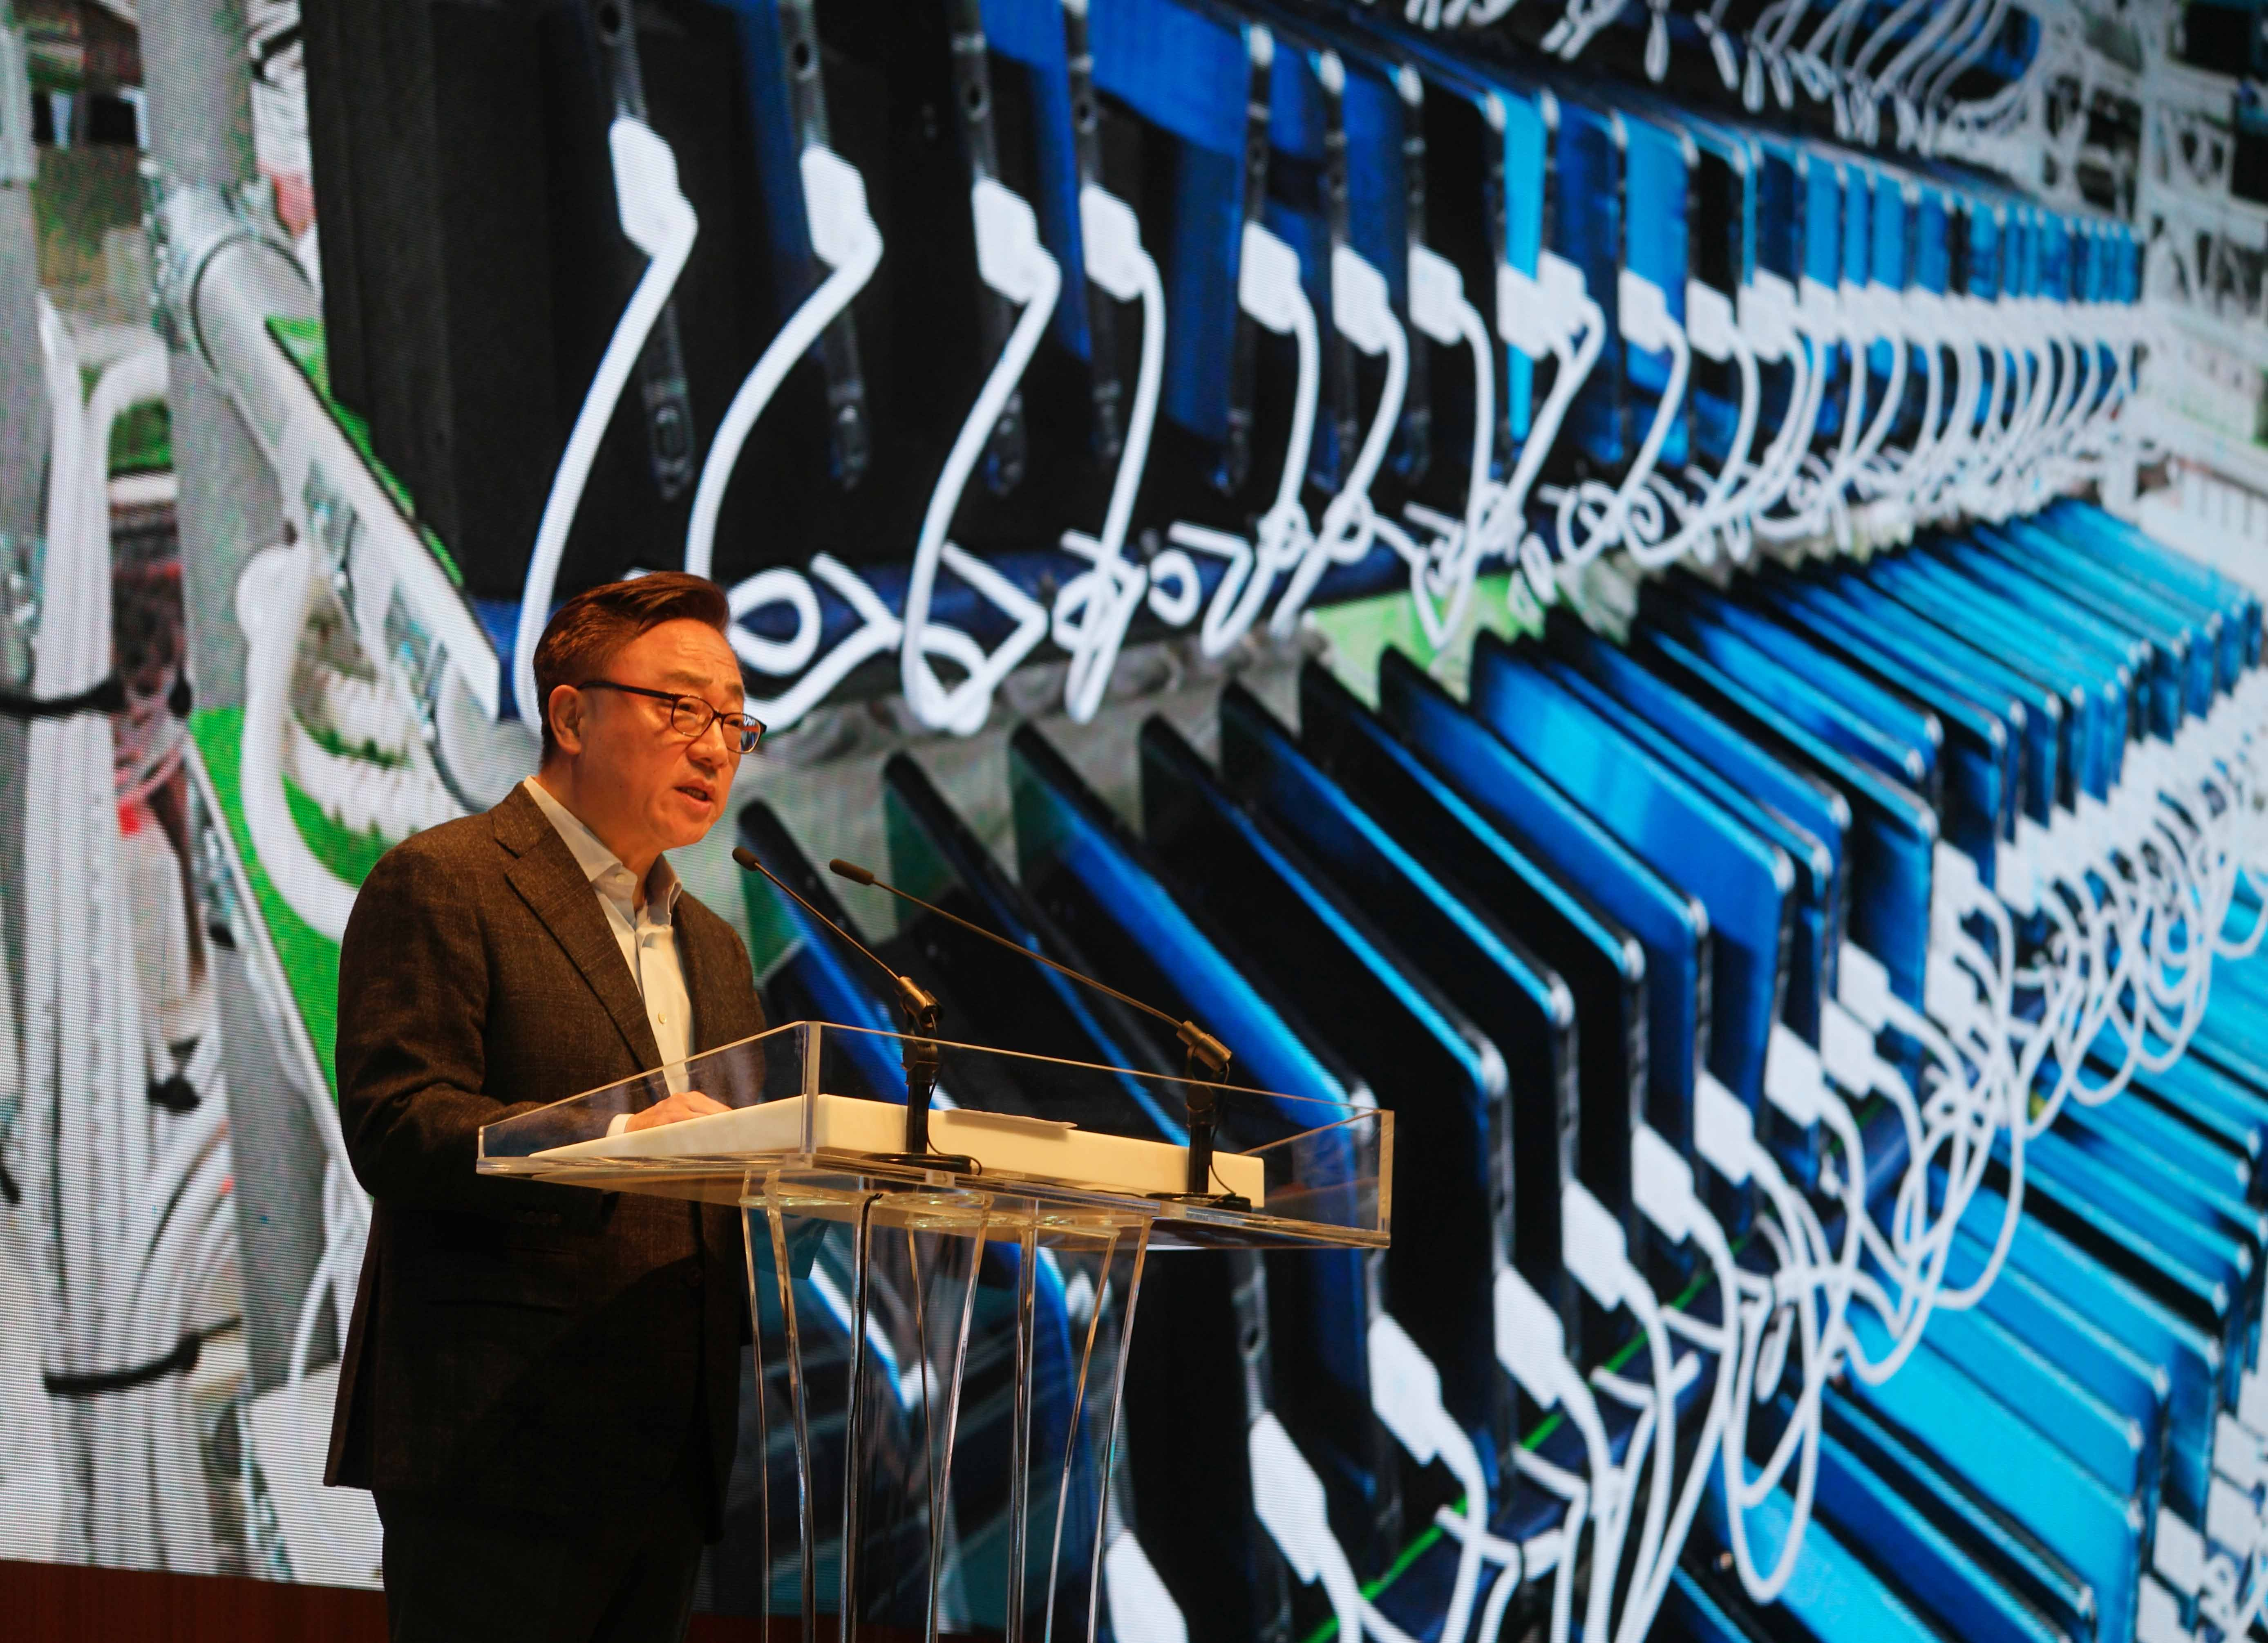 4-galaxy-note7-press-conferencedj-koh-president-of-mobile-communication-business.jpg